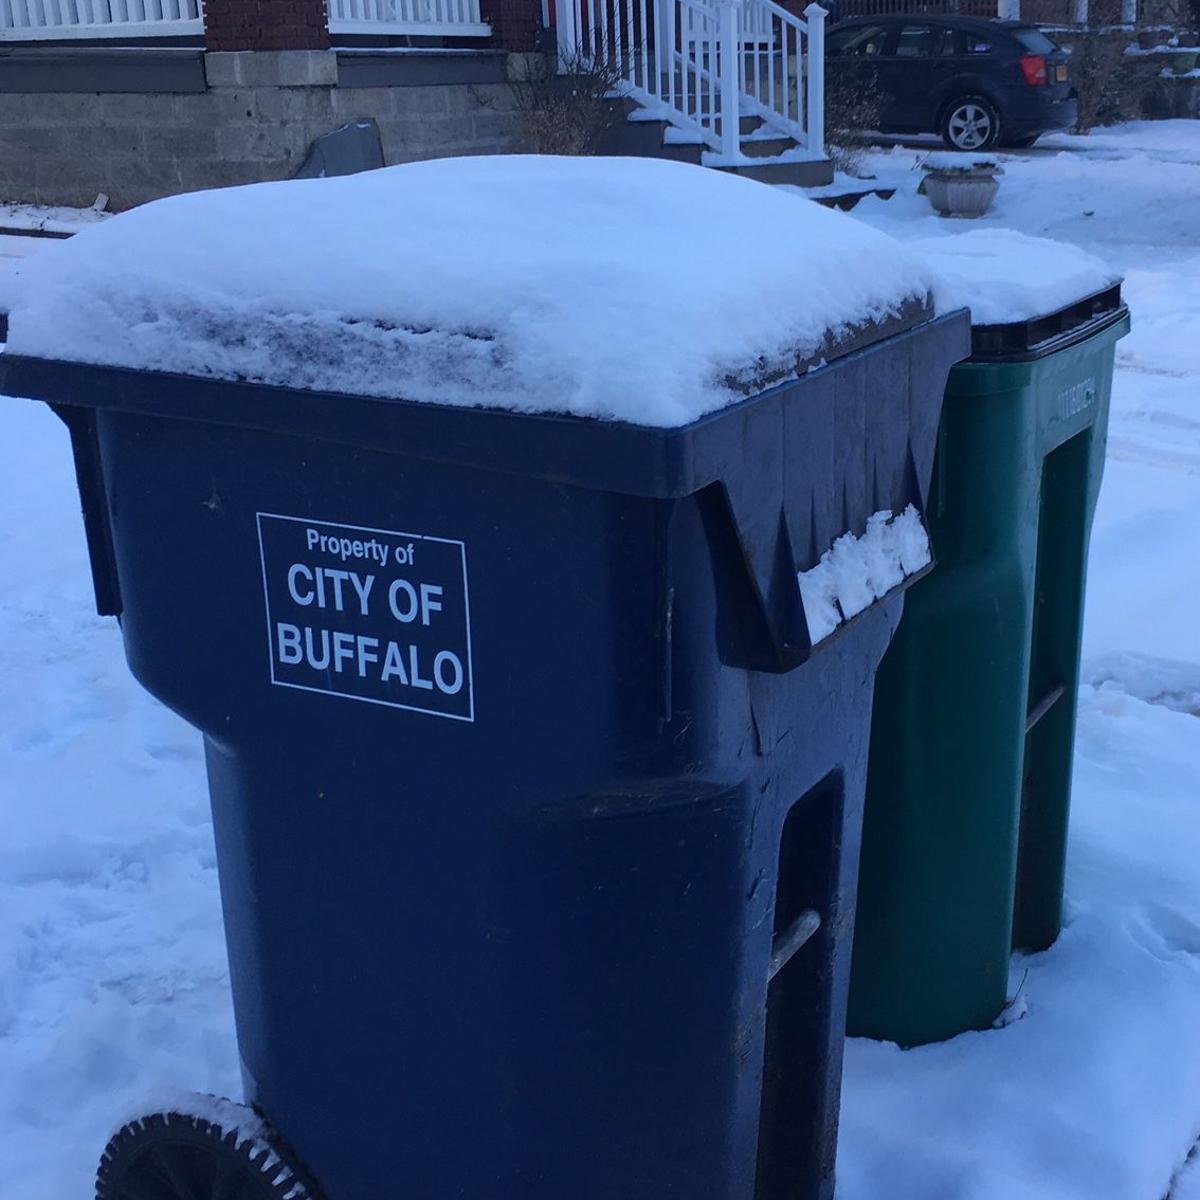 2021 Erie Christmas Garbage Pickup Schedule Reminder No Trash Pickup In Buffalo Amherst On Christmas New Year S Day Local News Buffalonews Com